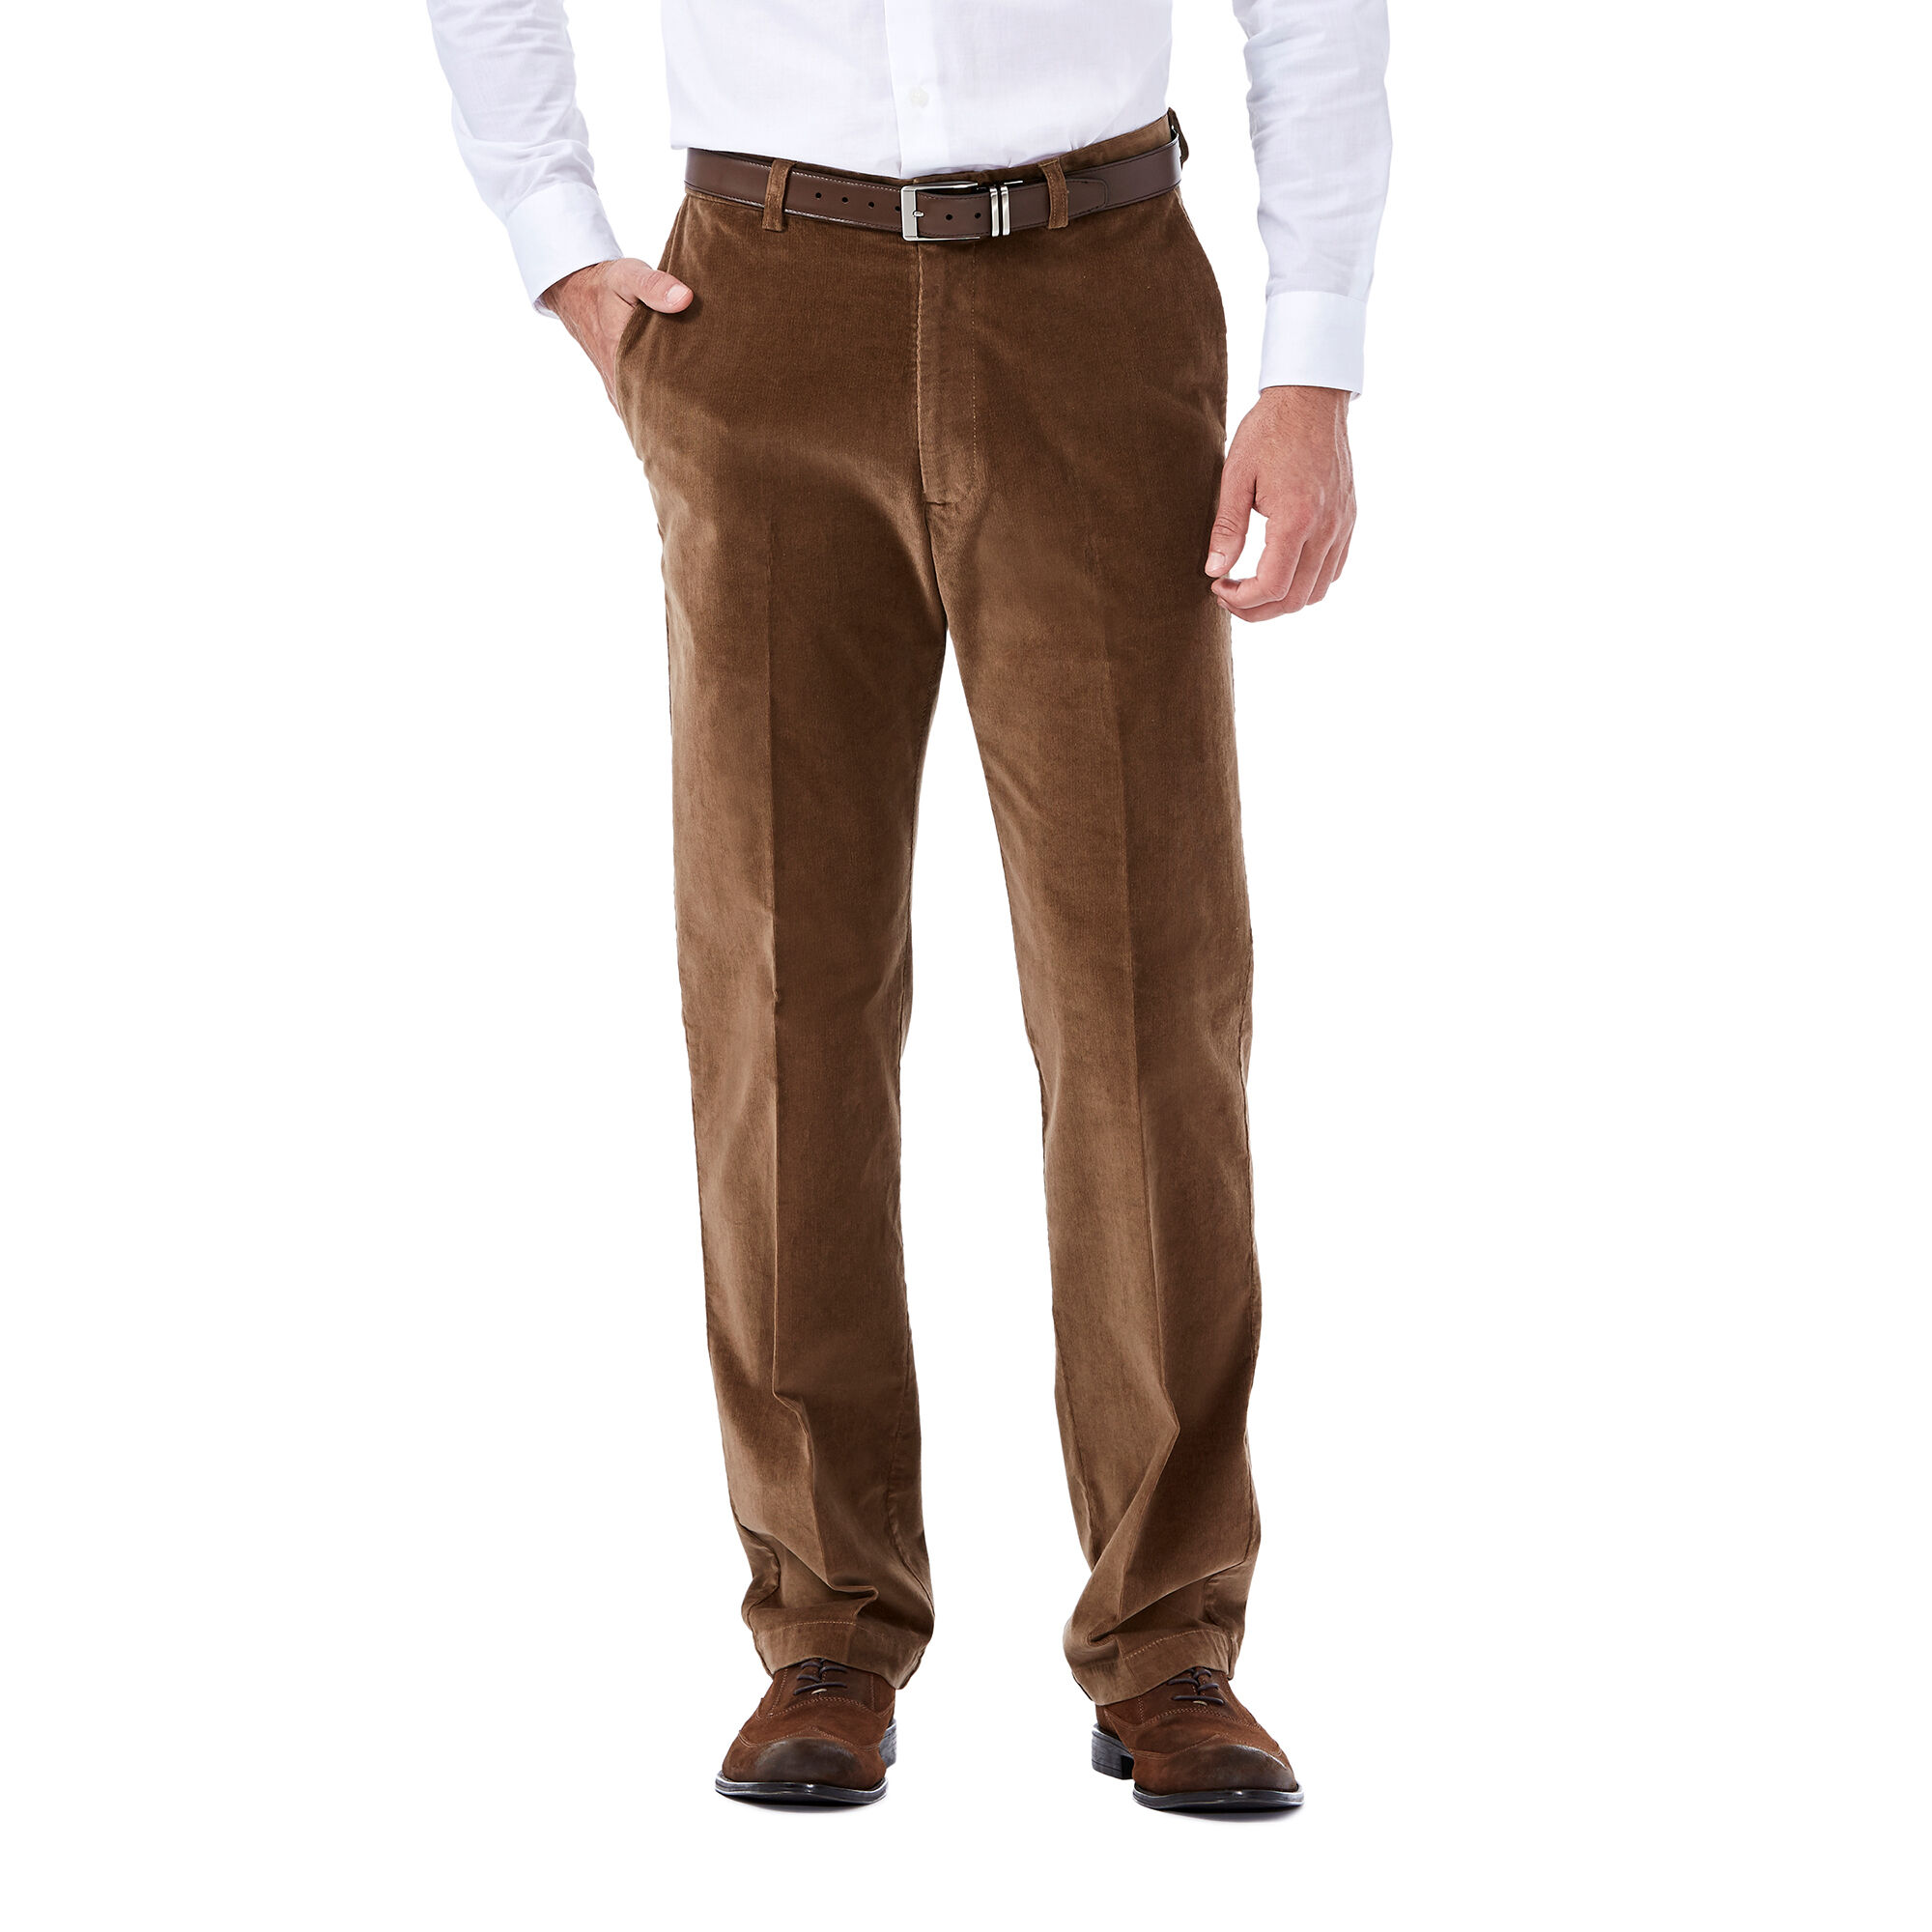 Three Pairs of Haggar Mens Regular Pants